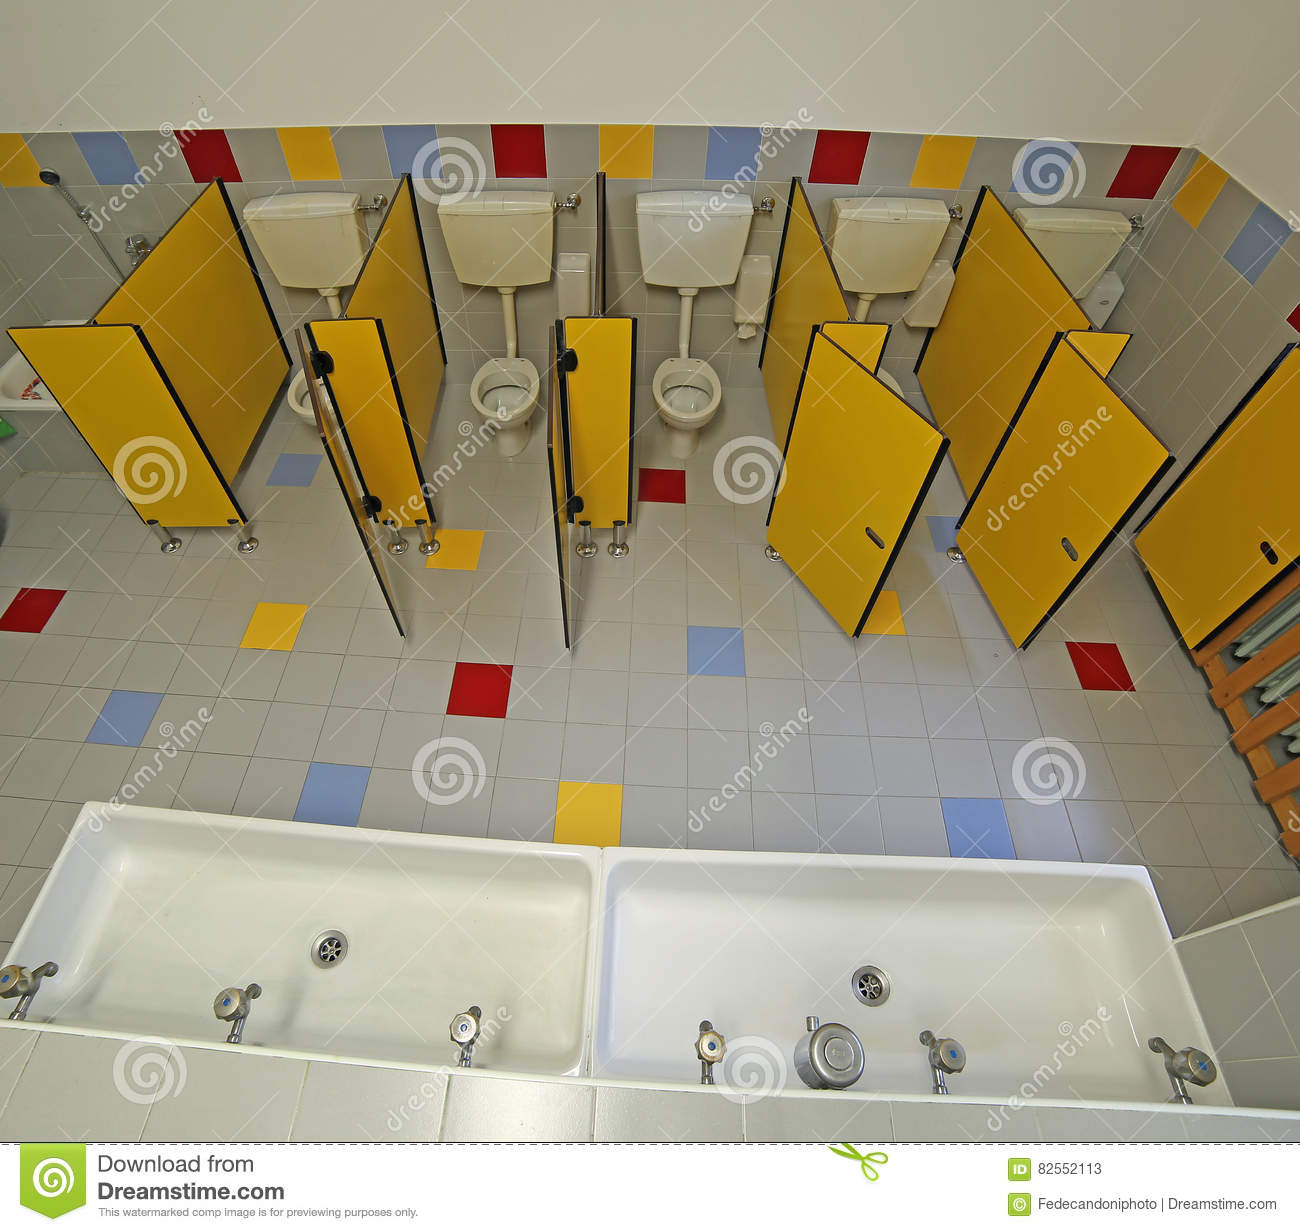 Preschool toilet Auto Flush Bathroom Of Nursery School With Small Toilets And Long Sinks Leport Schools Inside Bathroom Of Nursery School With Small Toilets Stock Image